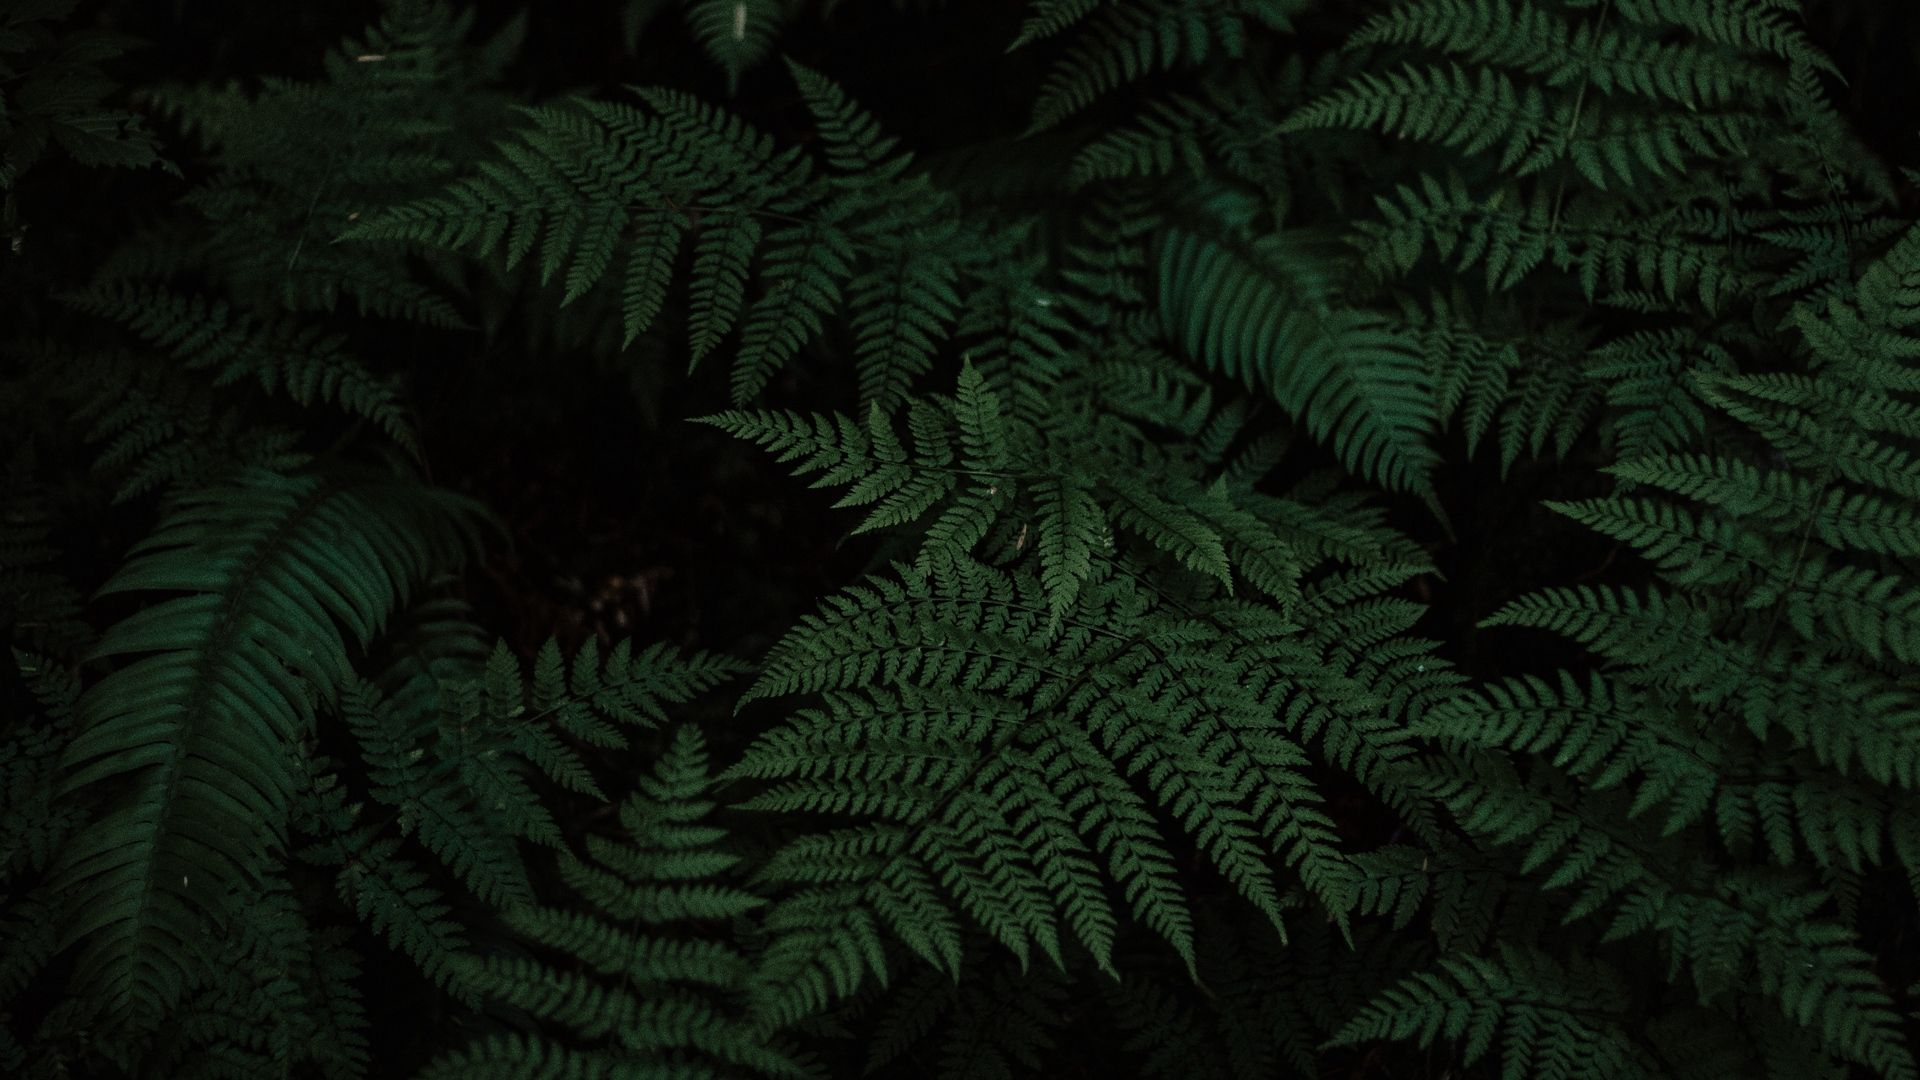 Fern full screen hd wallpaper